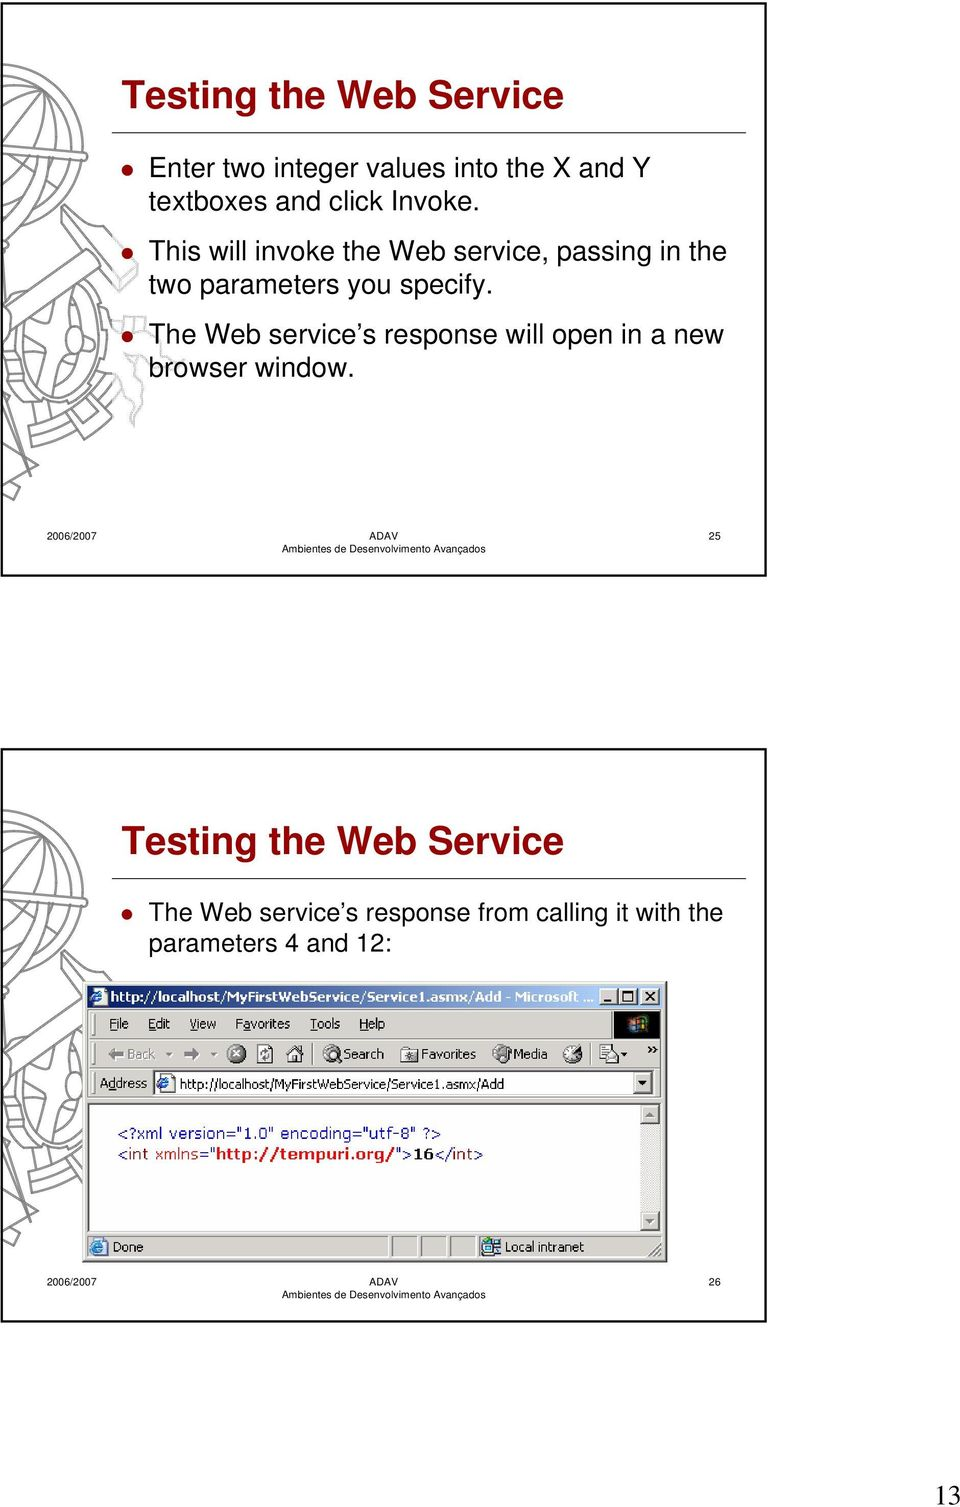 This will invoke the Web service, passing in the two parameters you specify.